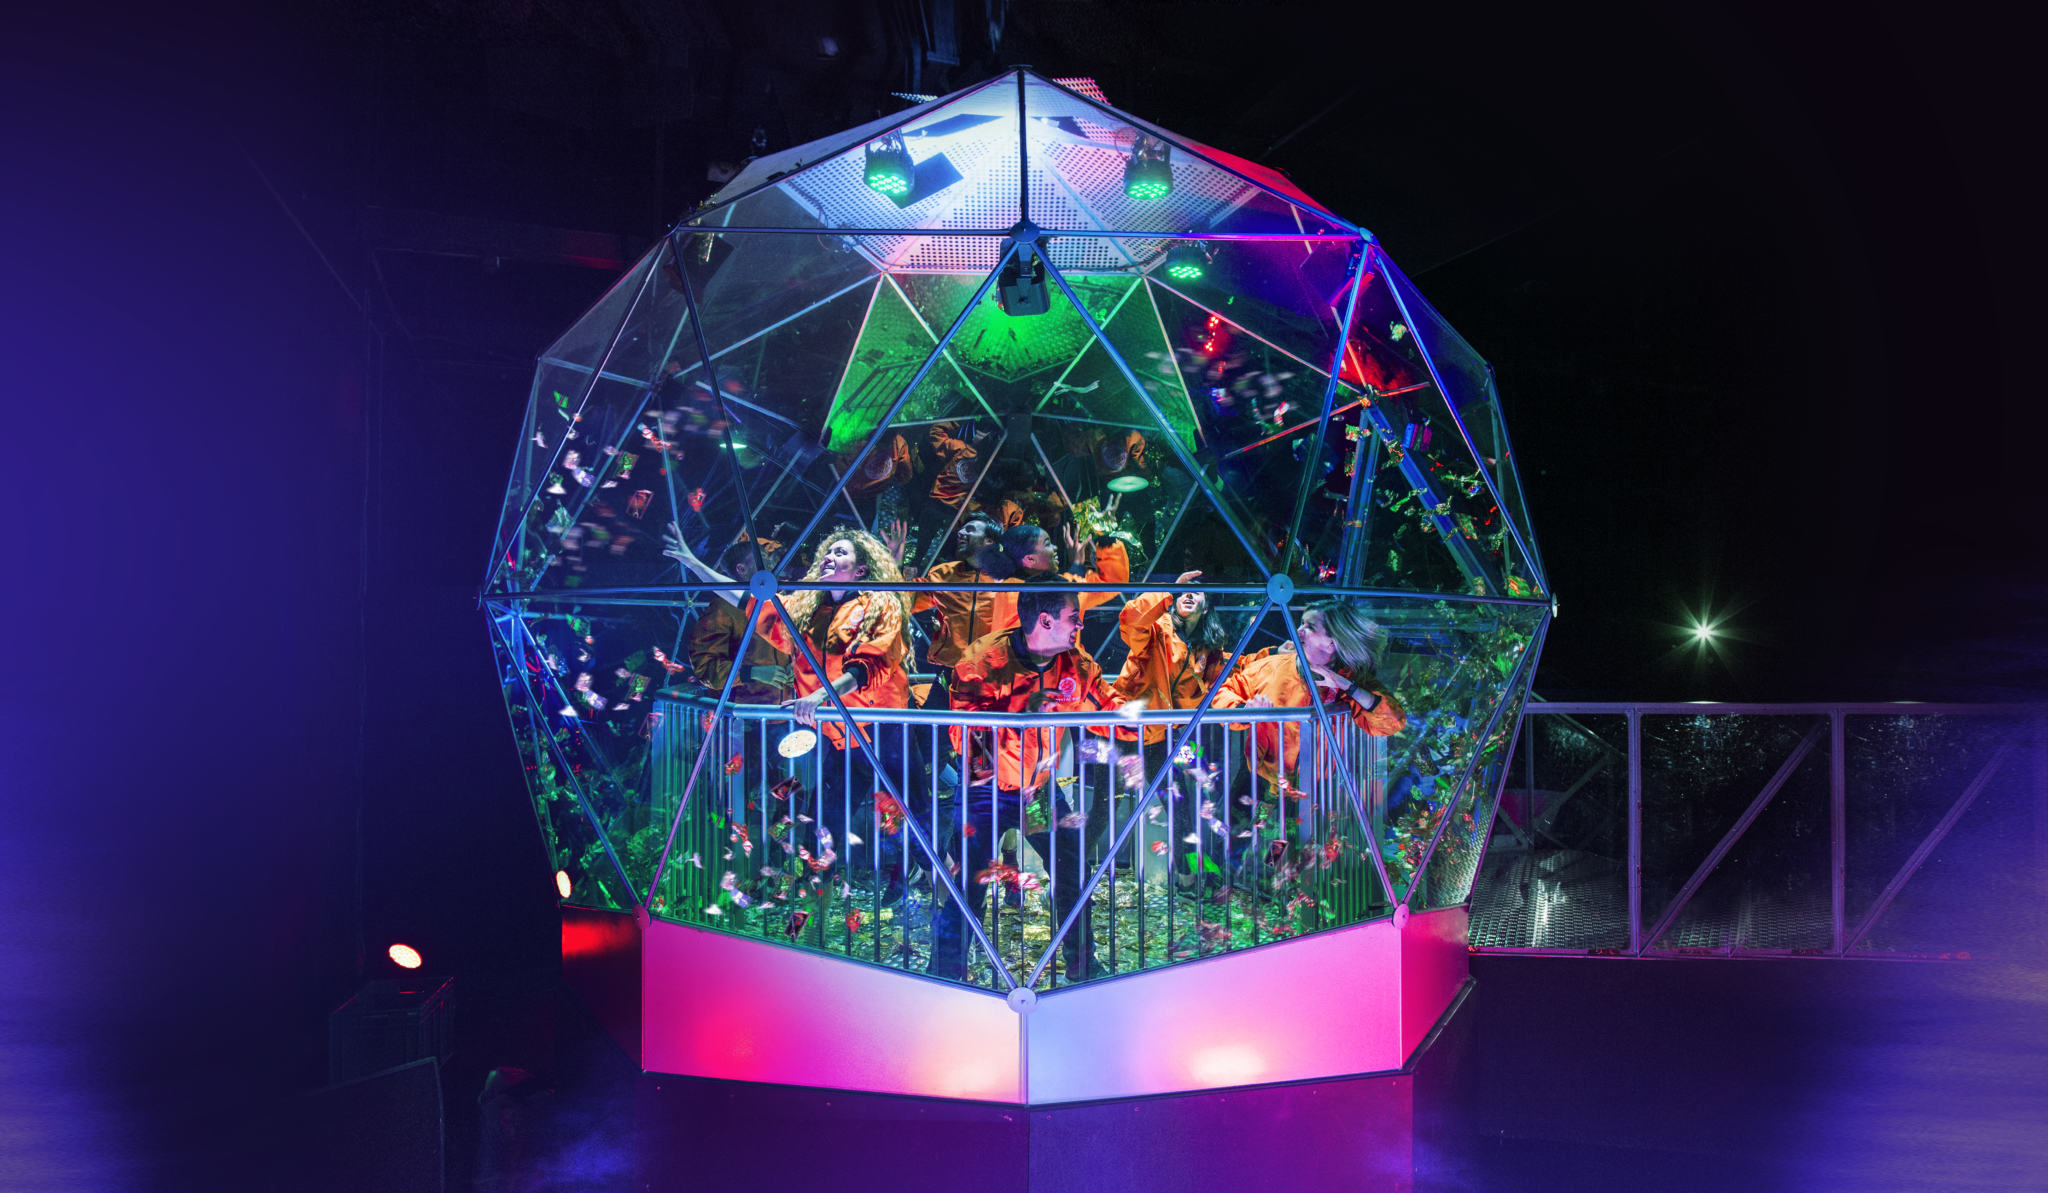 Crystal Maze Manchester adds new games to experience